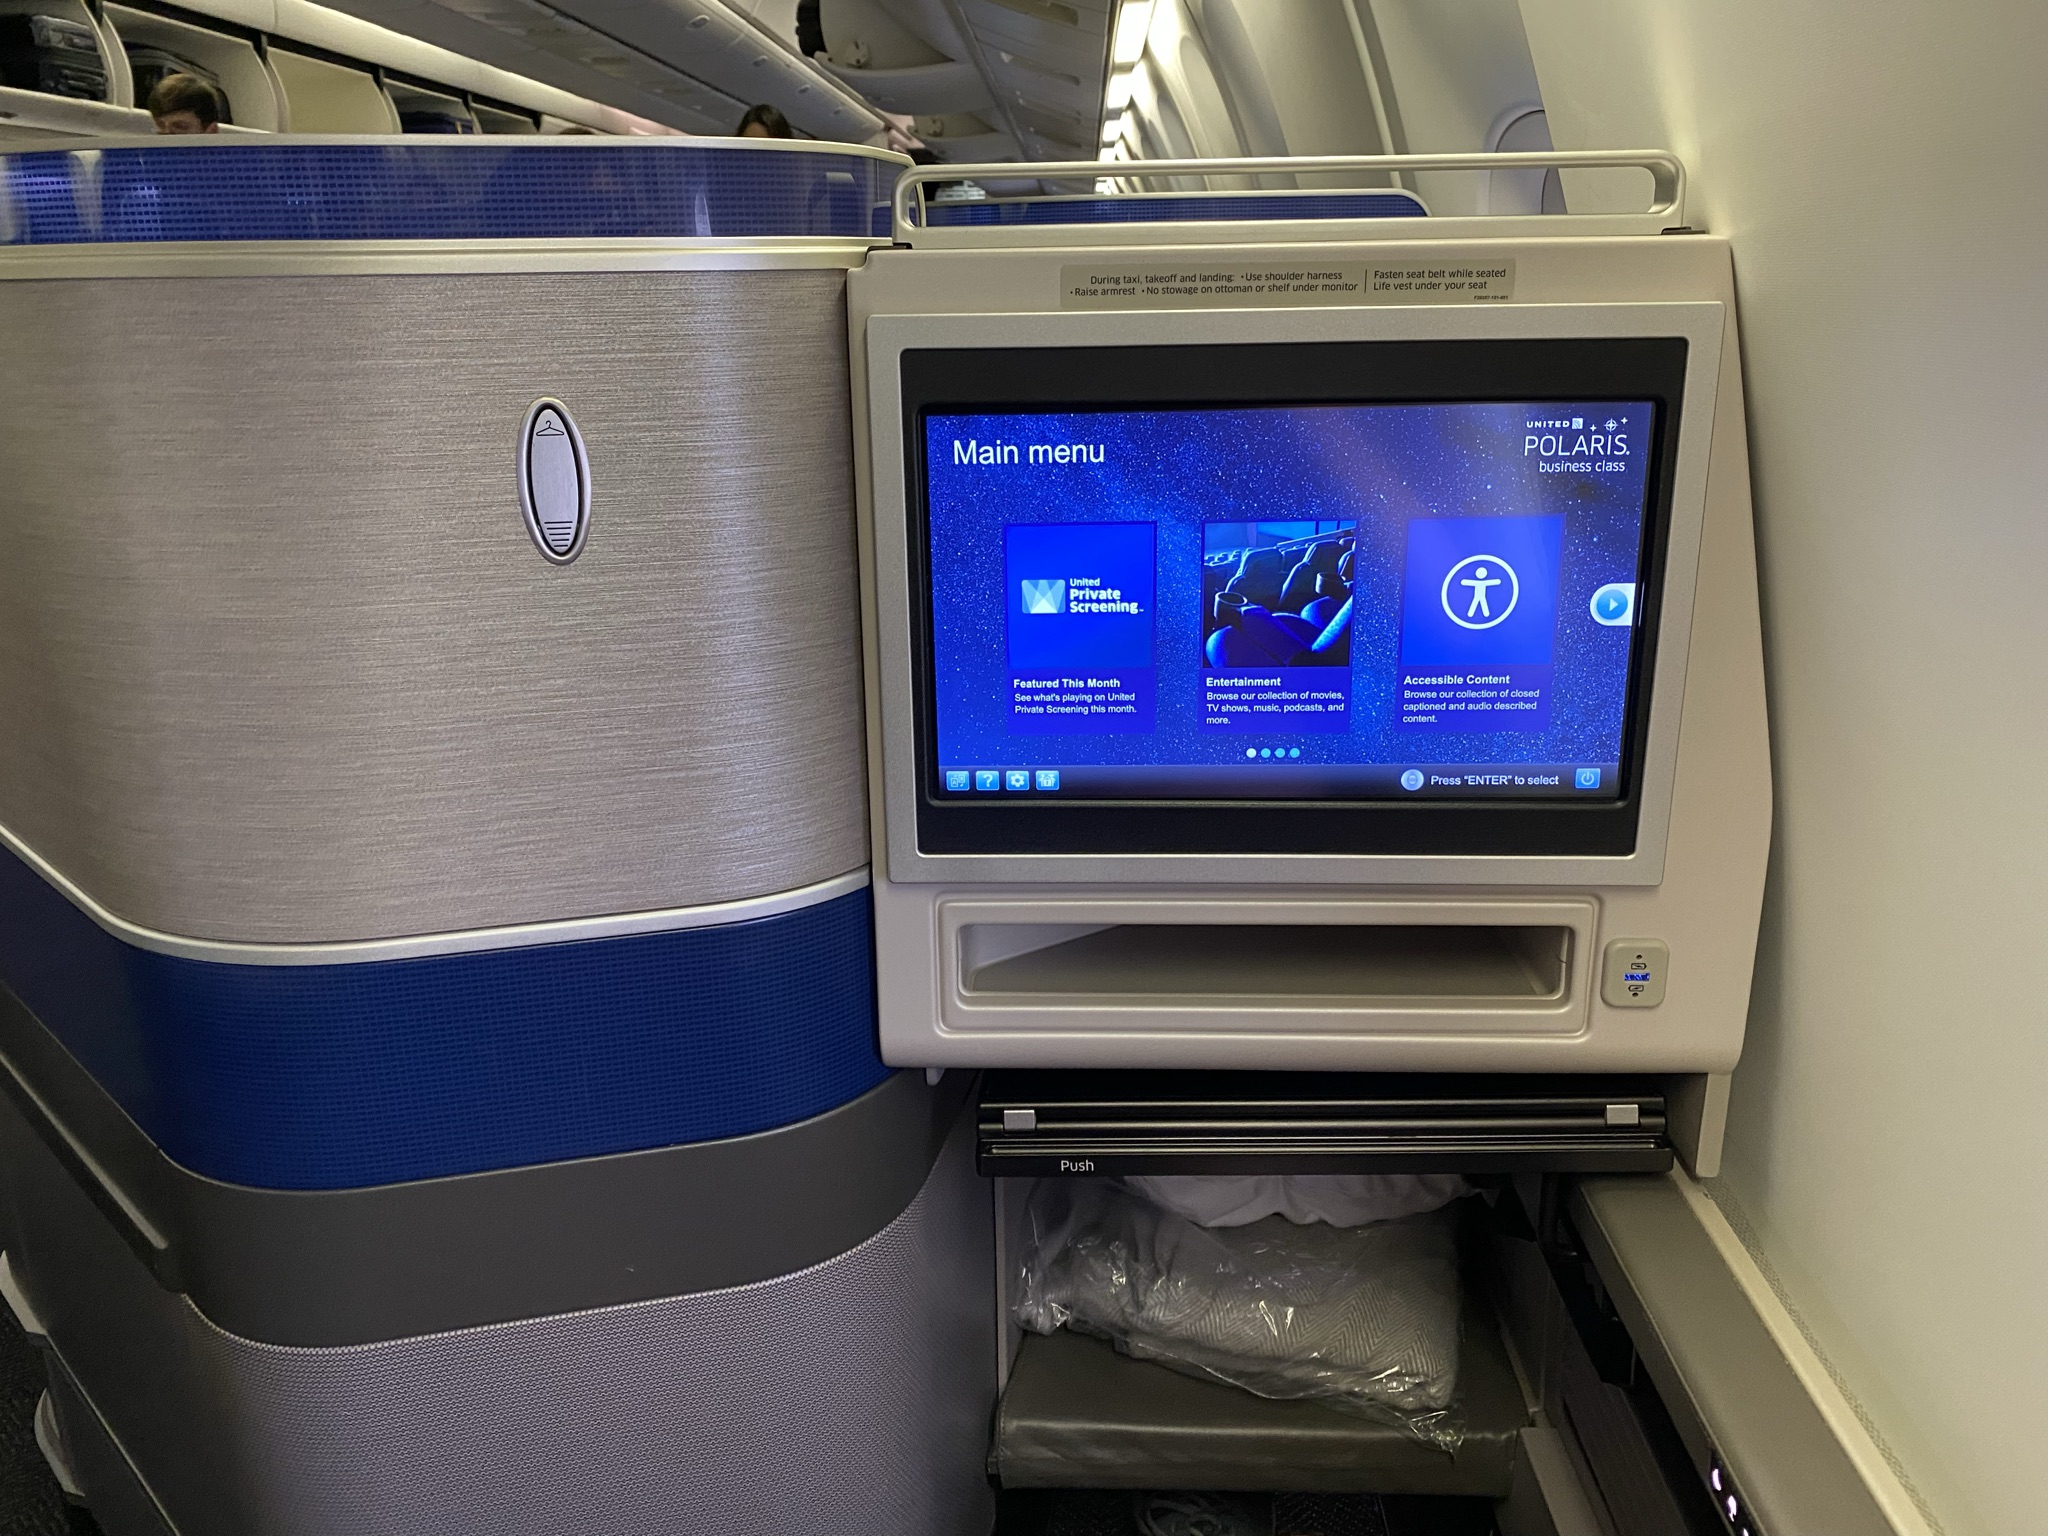 In-seat IFE on Polaris, with a large clear screen